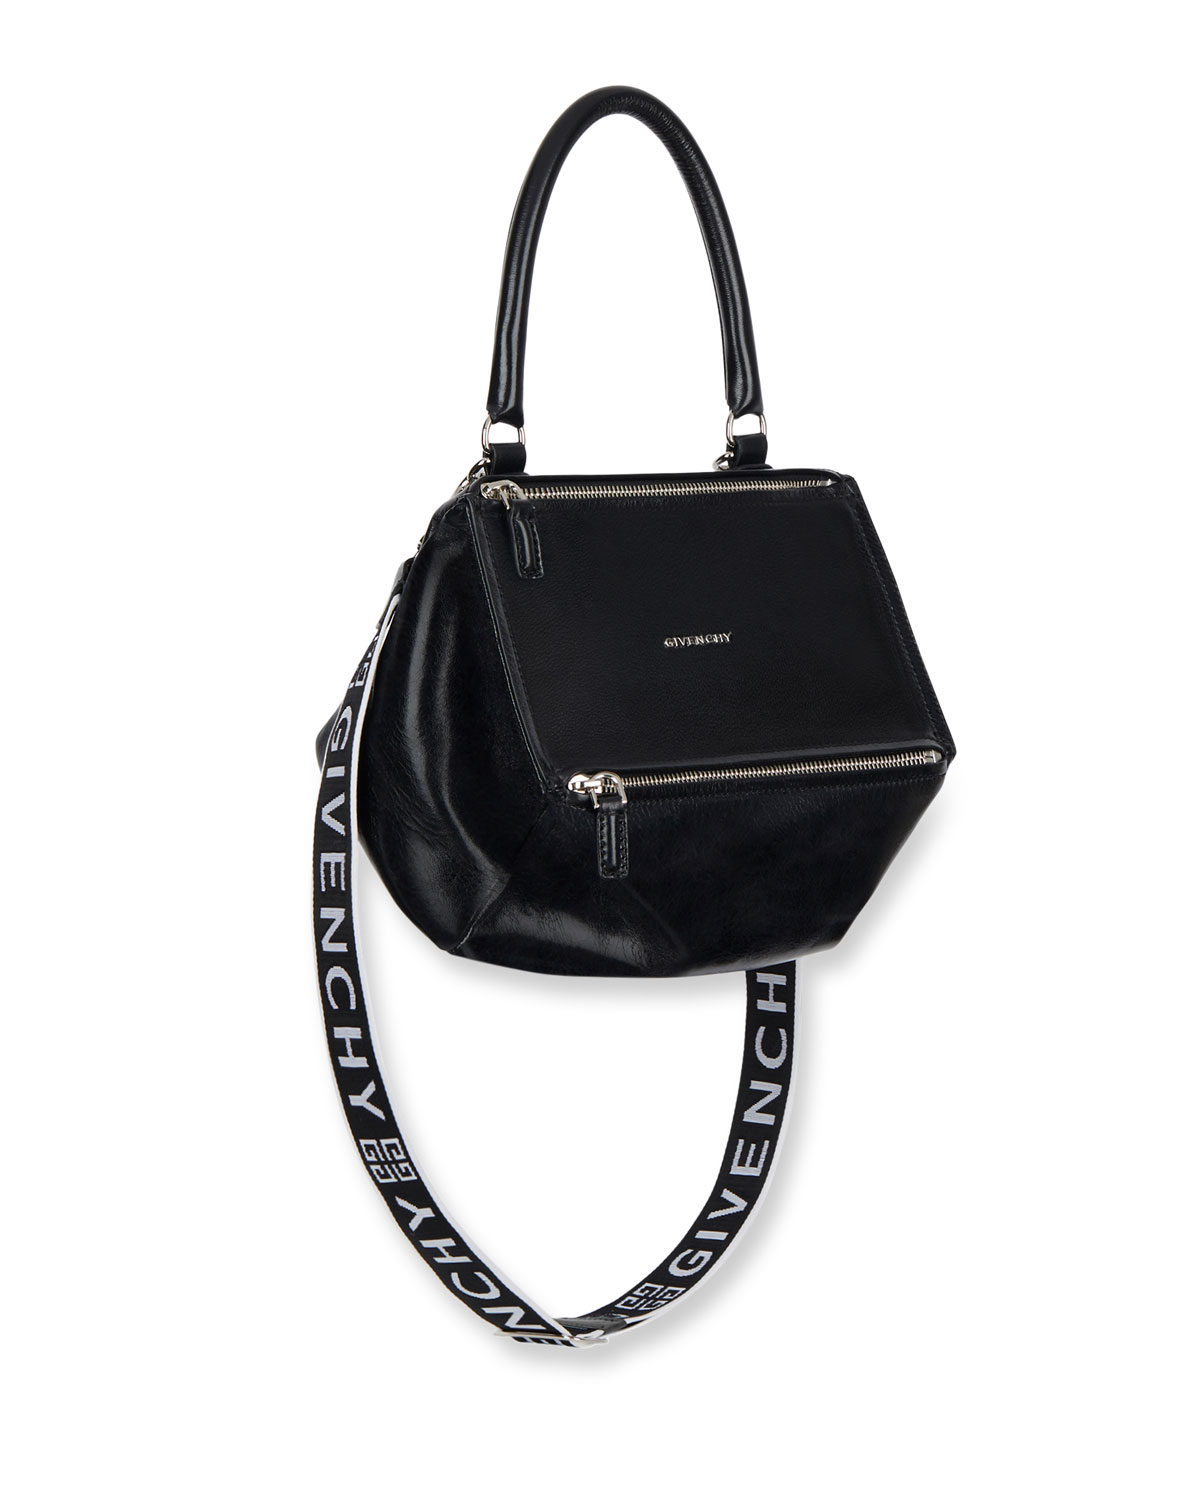 online for sale new style of 2019 high fashion Pandora Small Smooth Leather Crossbody Bag with Logo-Web Strap